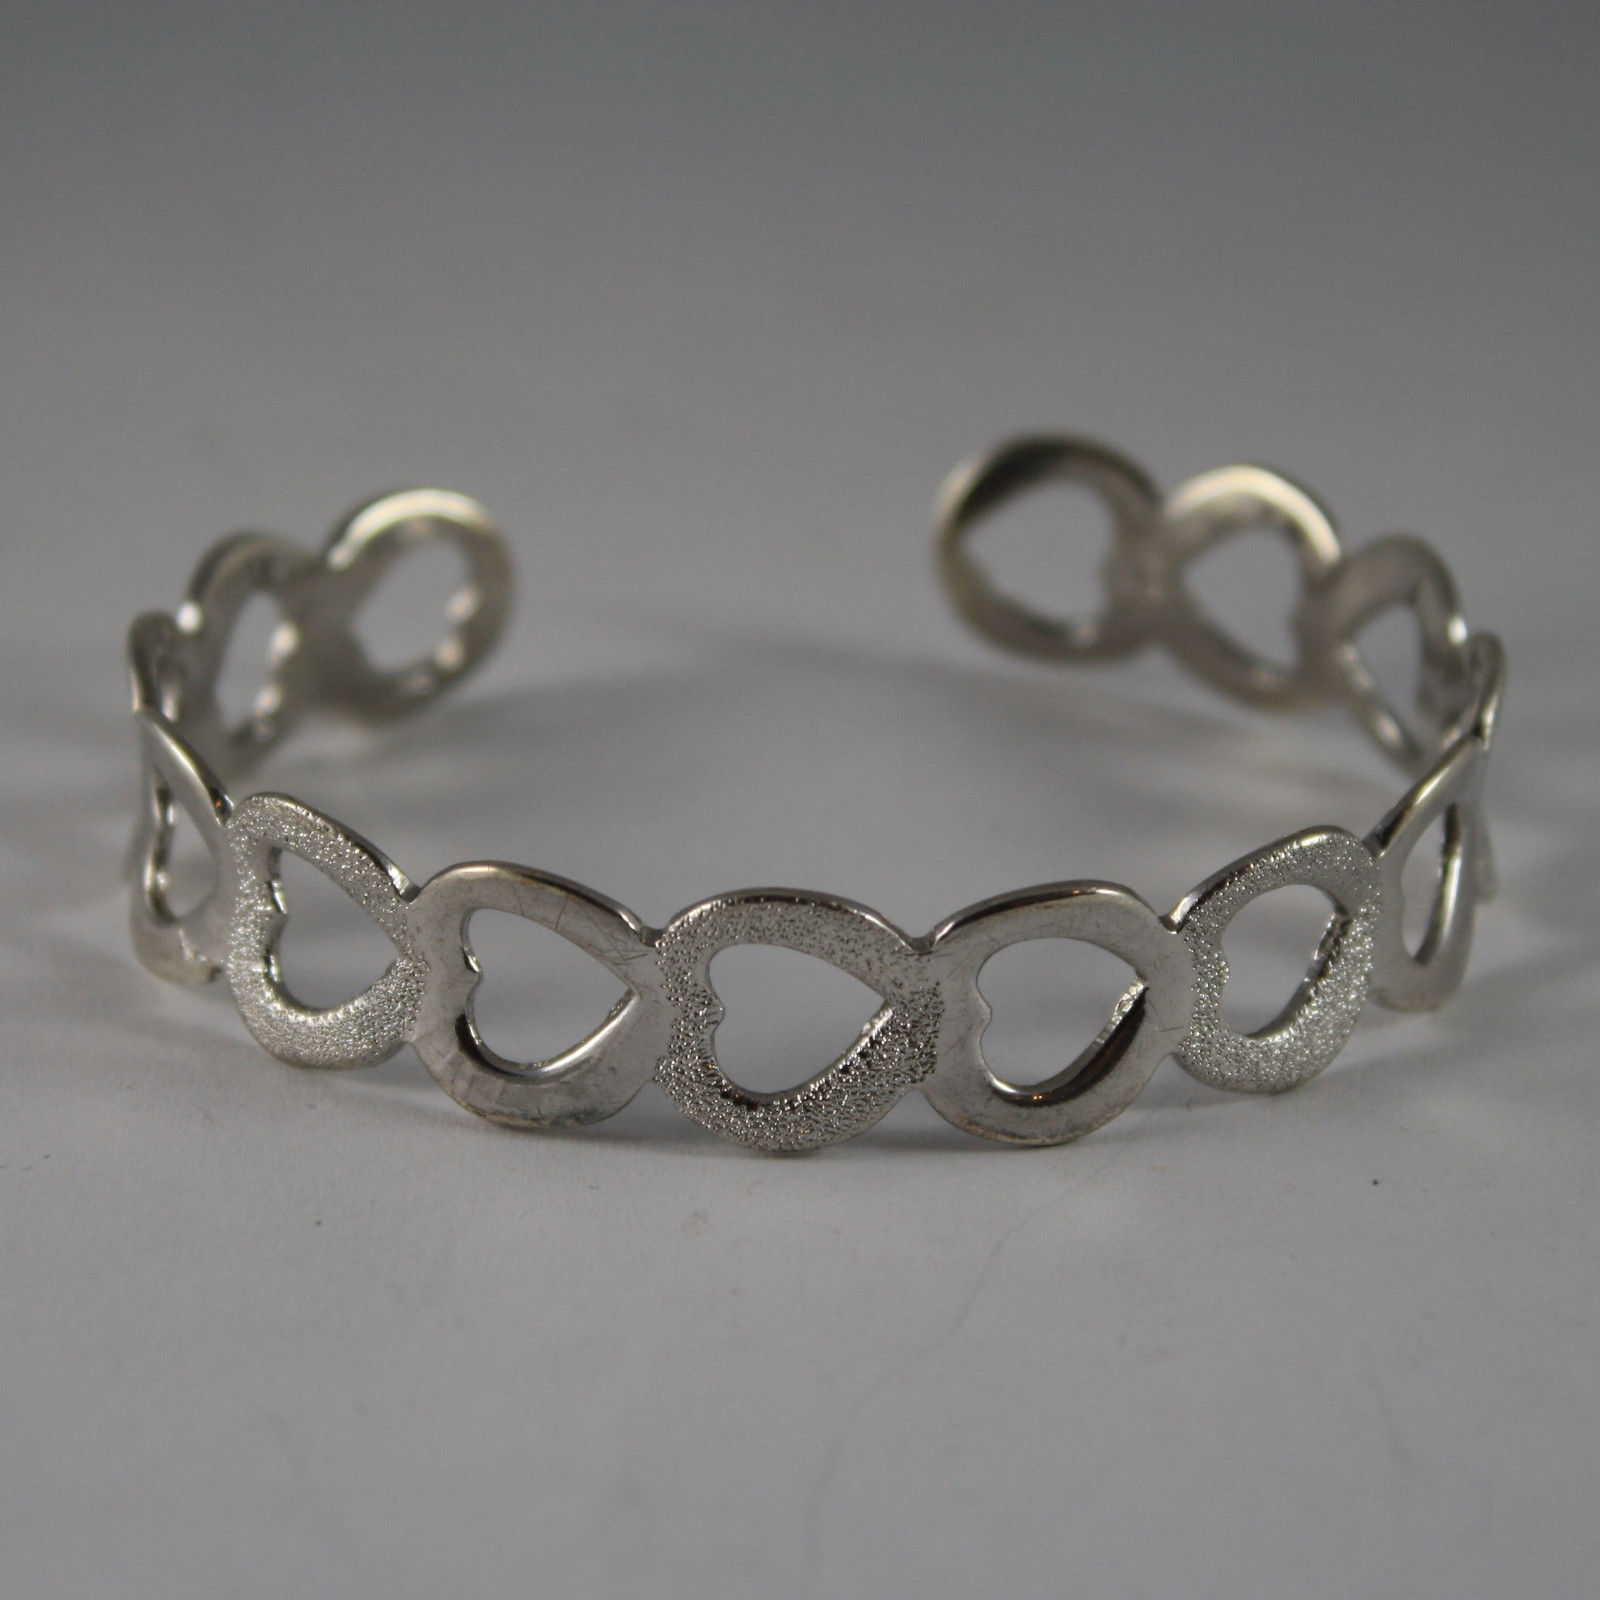 .925 RHODIUM SILVER RIGID BRACELET WITH HEART